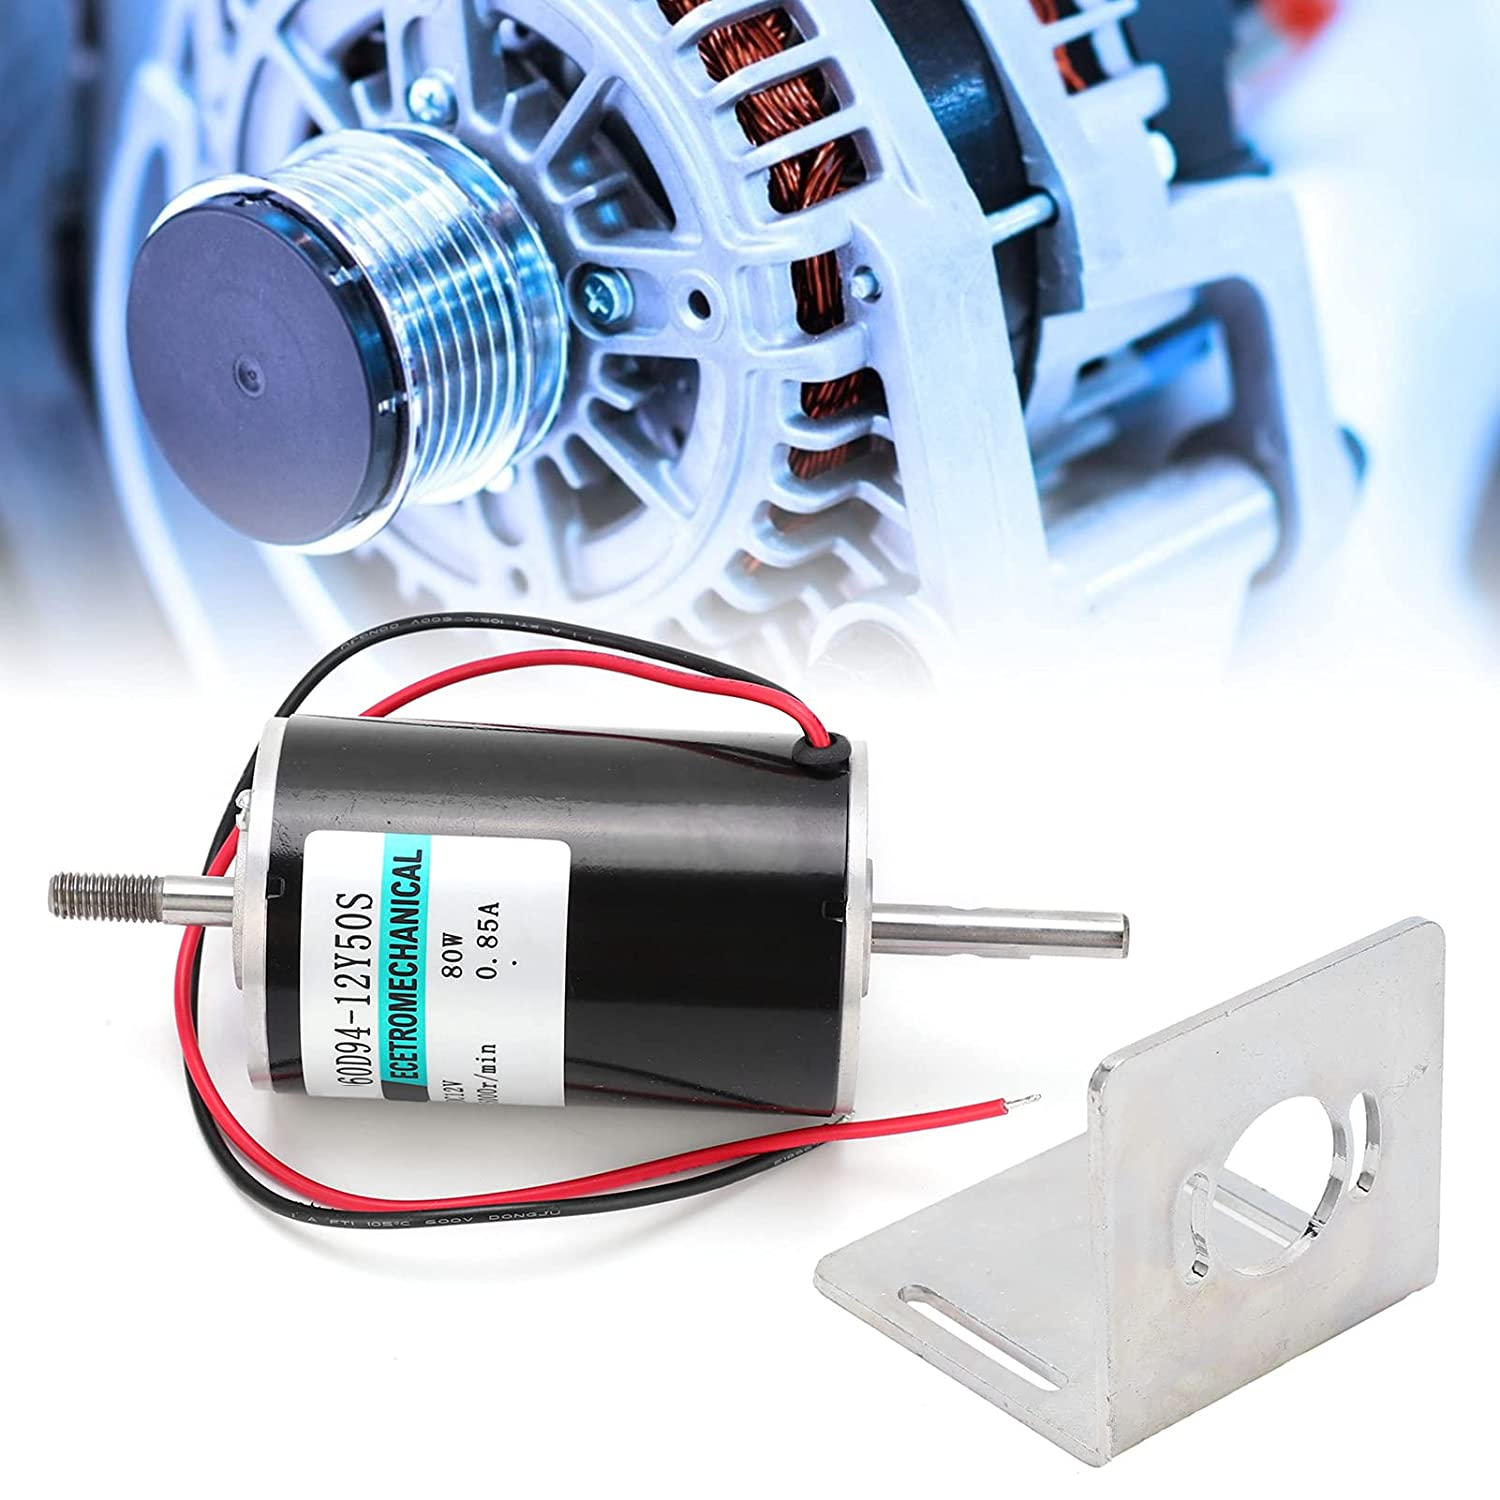 Speed Regulation Motor New color Functional for Grinder All items free shipping Engi DC